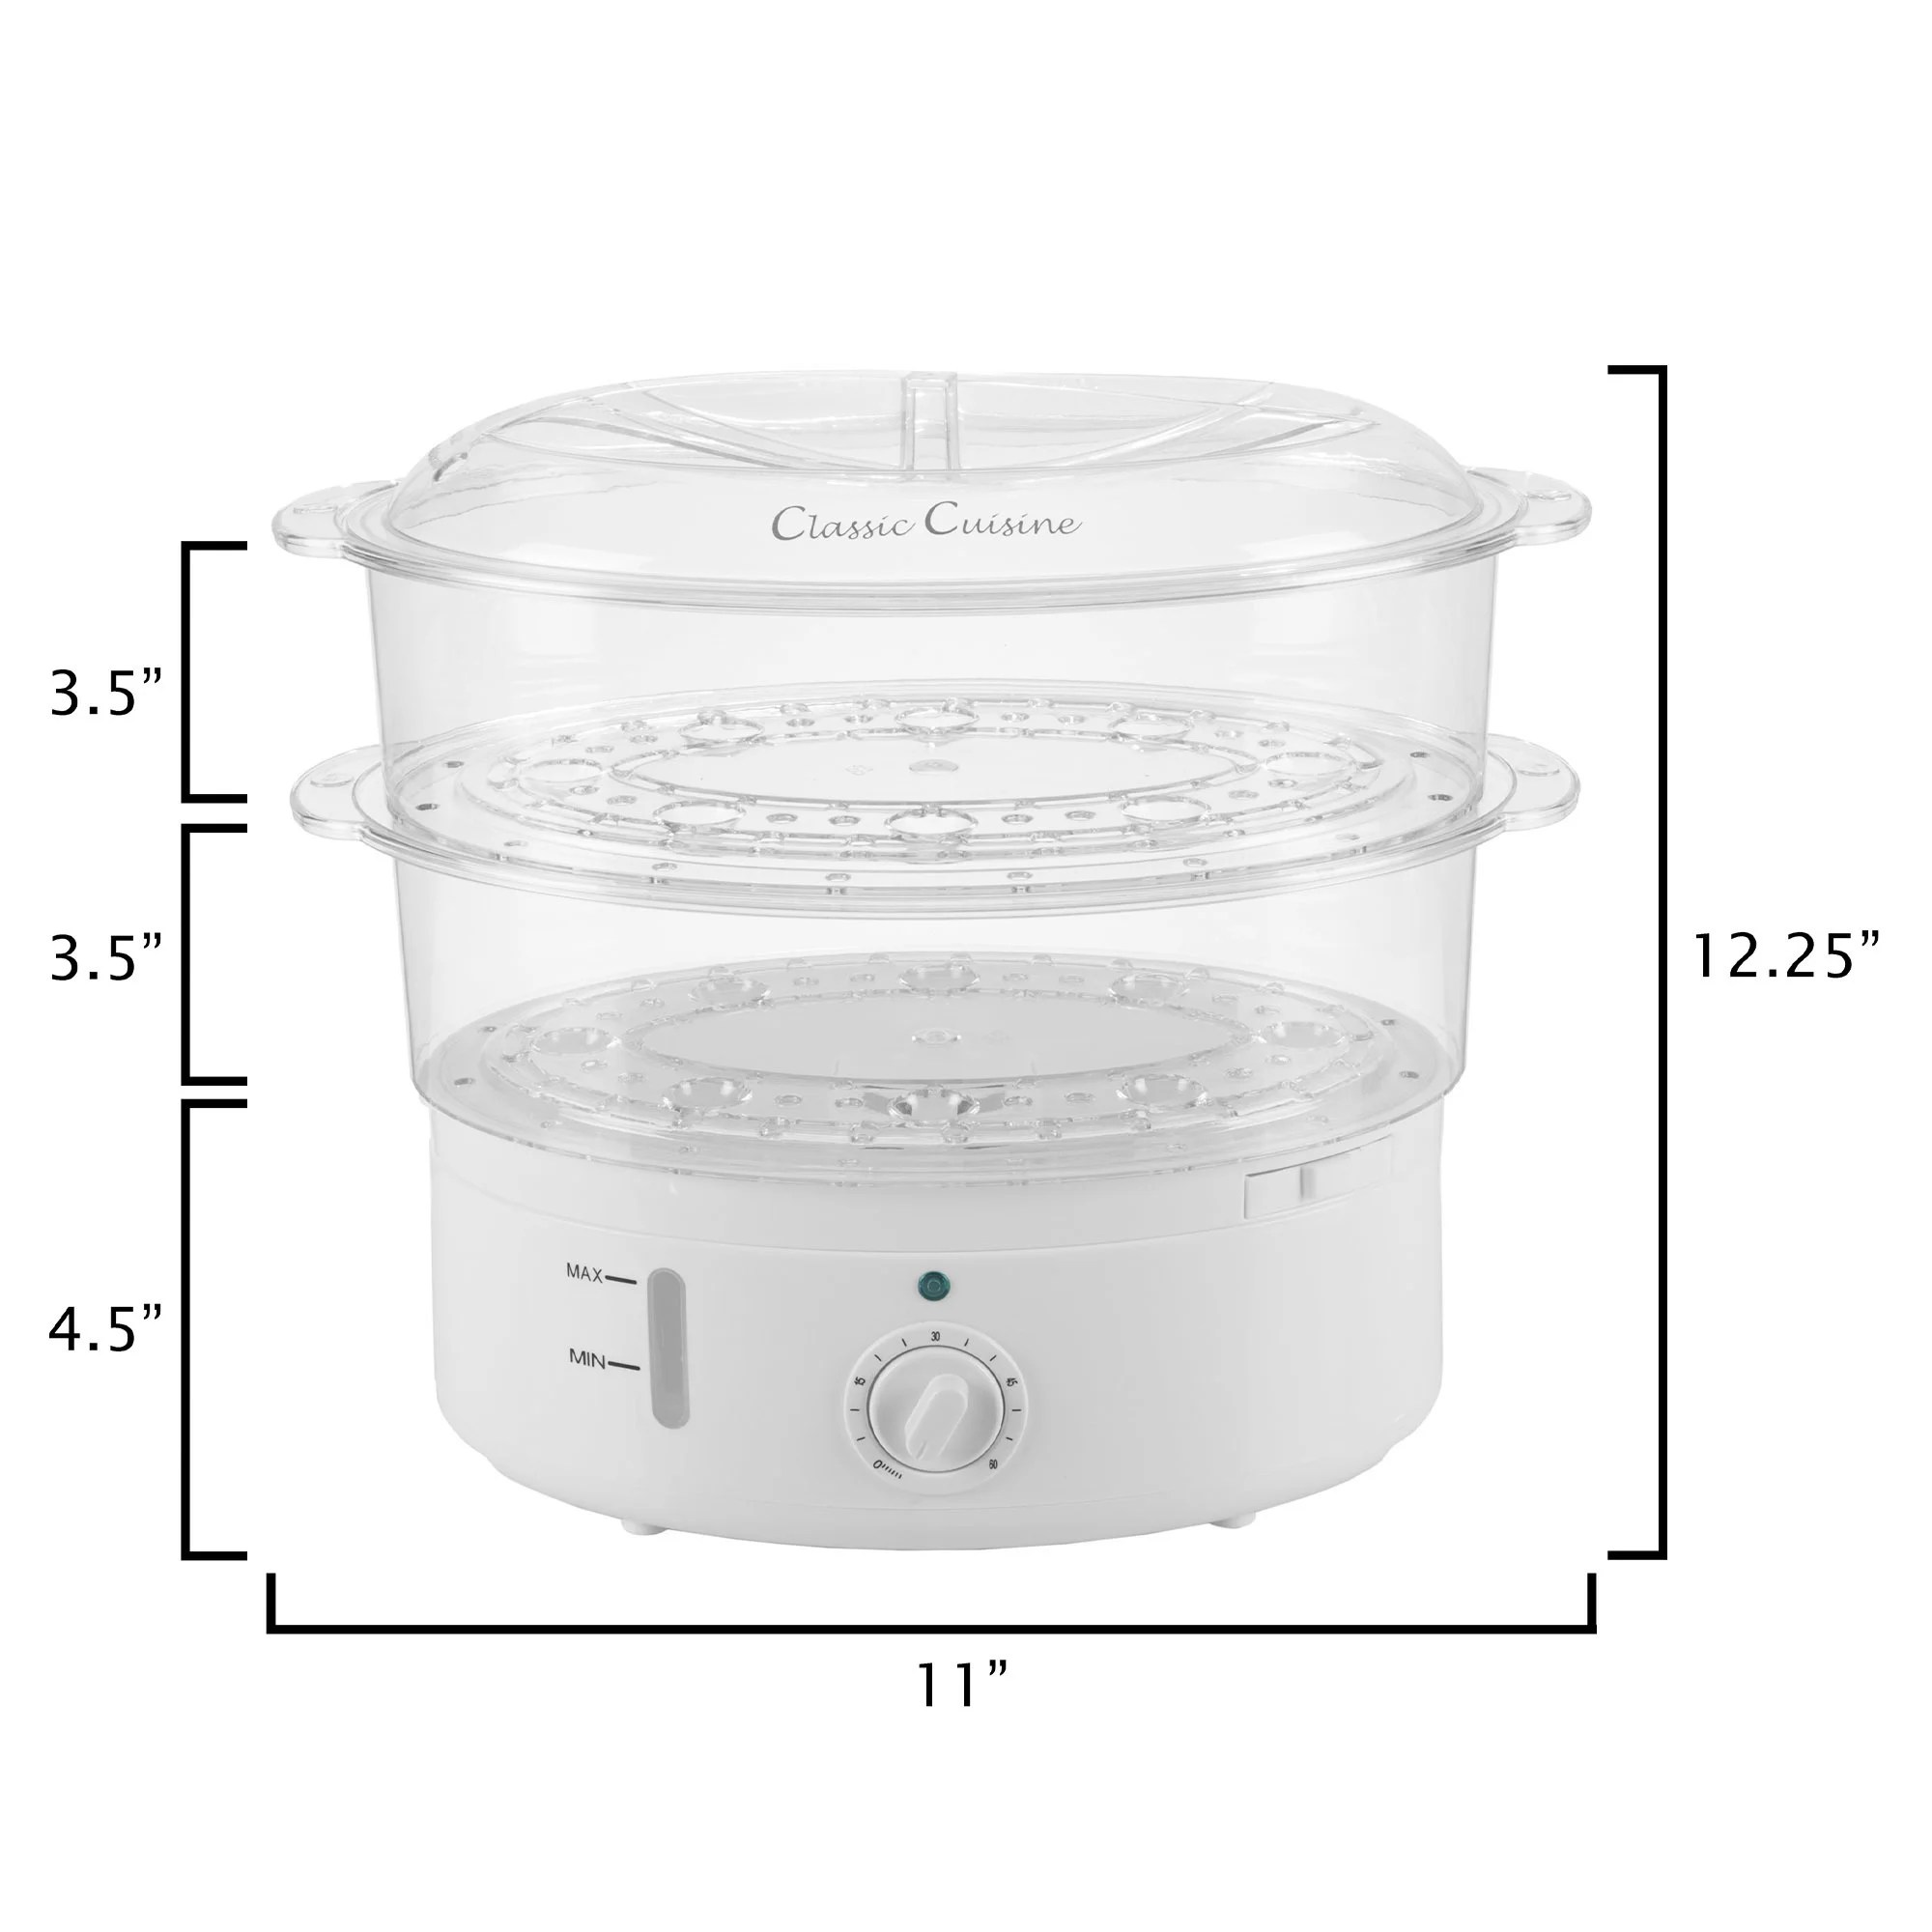 hight resolution of shop vegetable steamer rice cooker 6 3 quart electric steam appliance with timer by classic cuisine free shipping on orders over 45 overstock